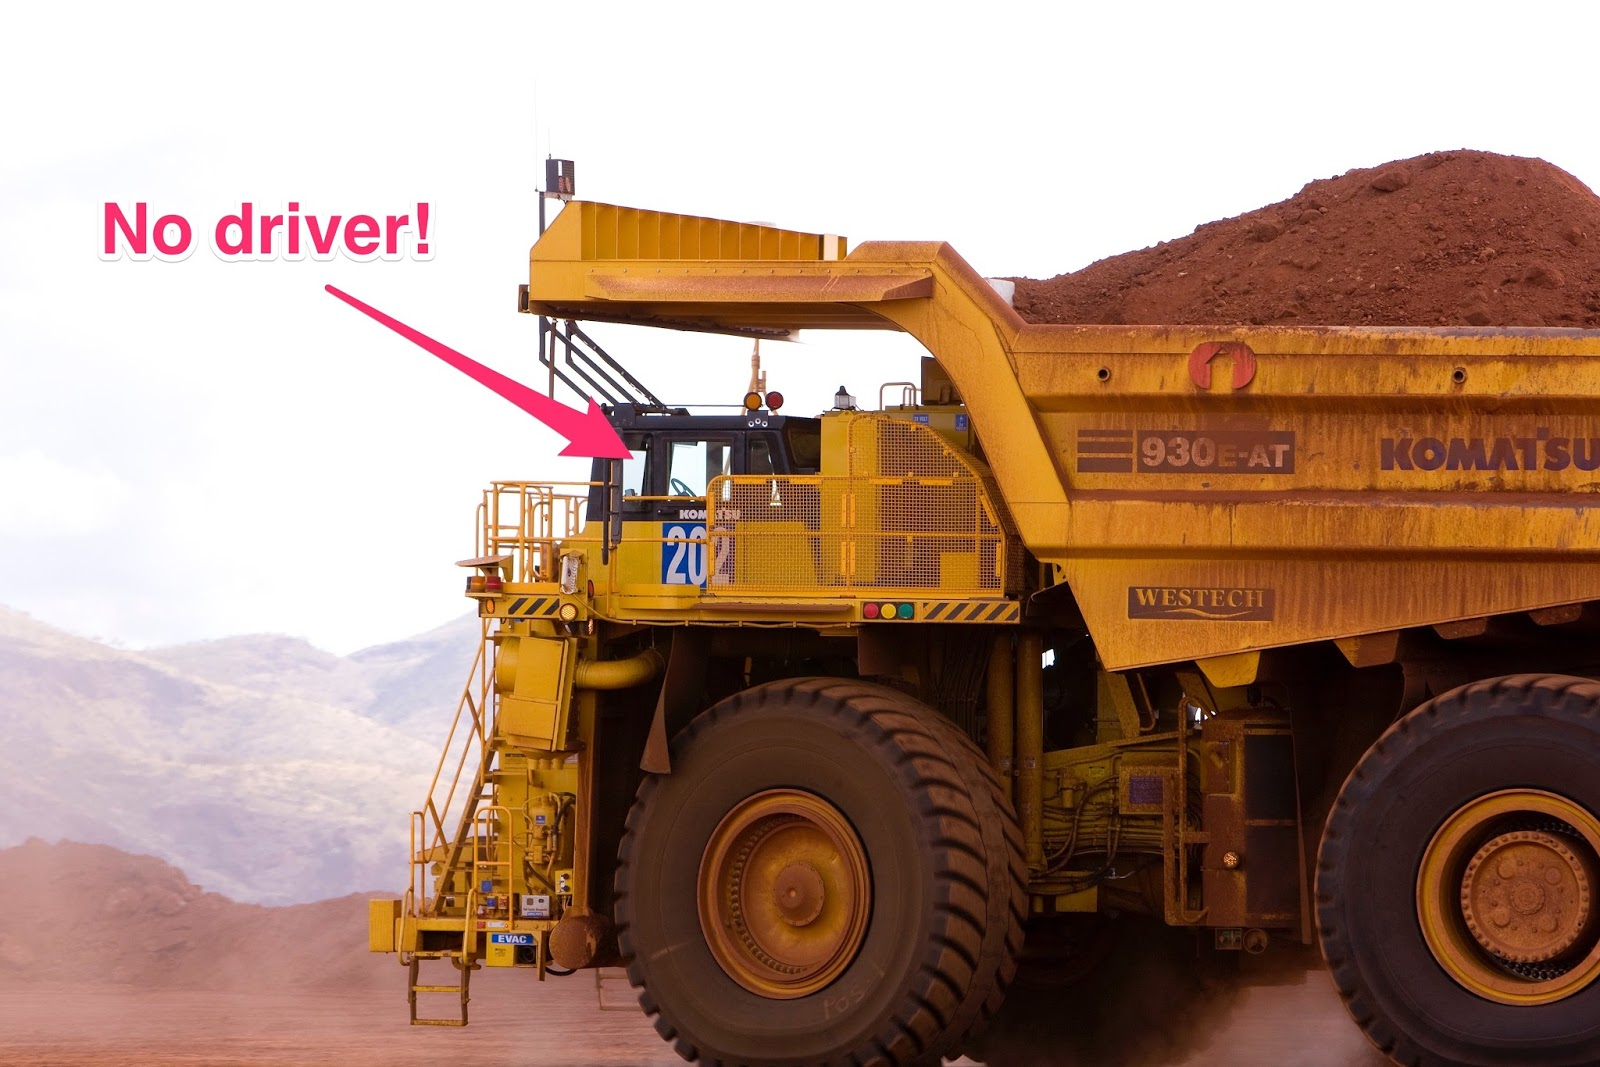 Robotics and automation will reduce mining employment by